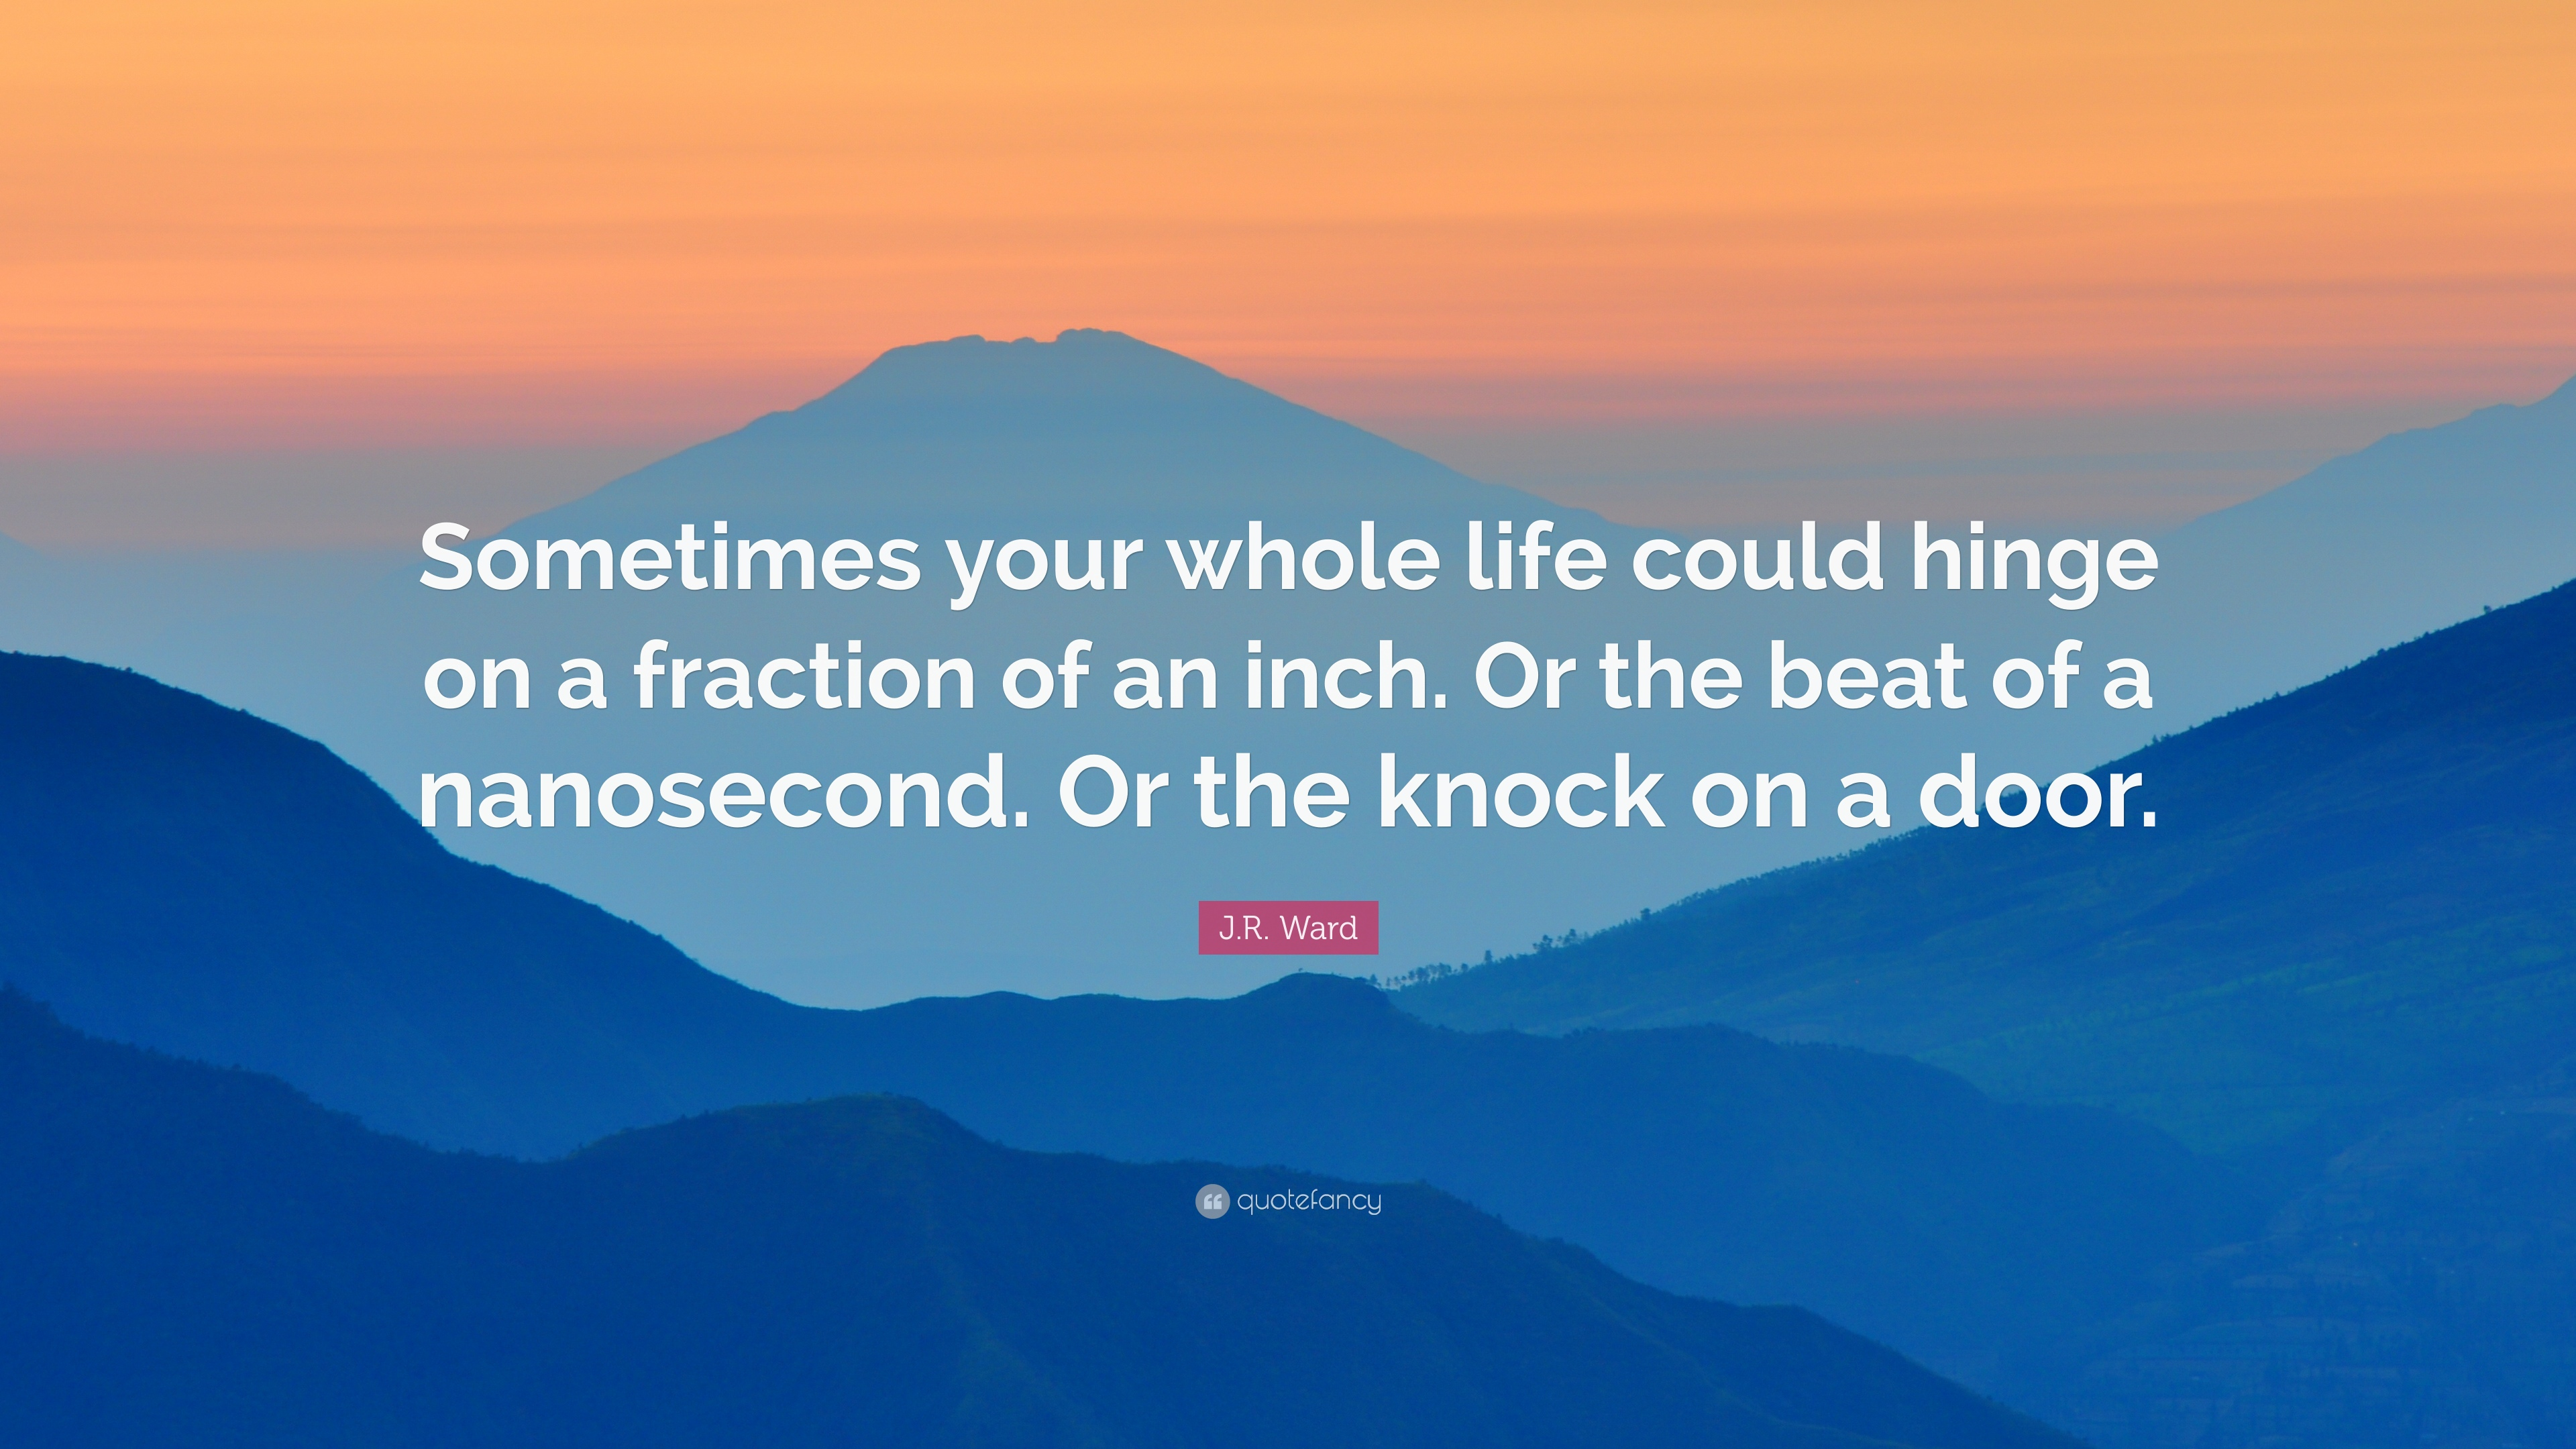 Bon J.R. Ward Quote: U201cSometimes Your Whole Life Could Hinge On A Fraction Of An